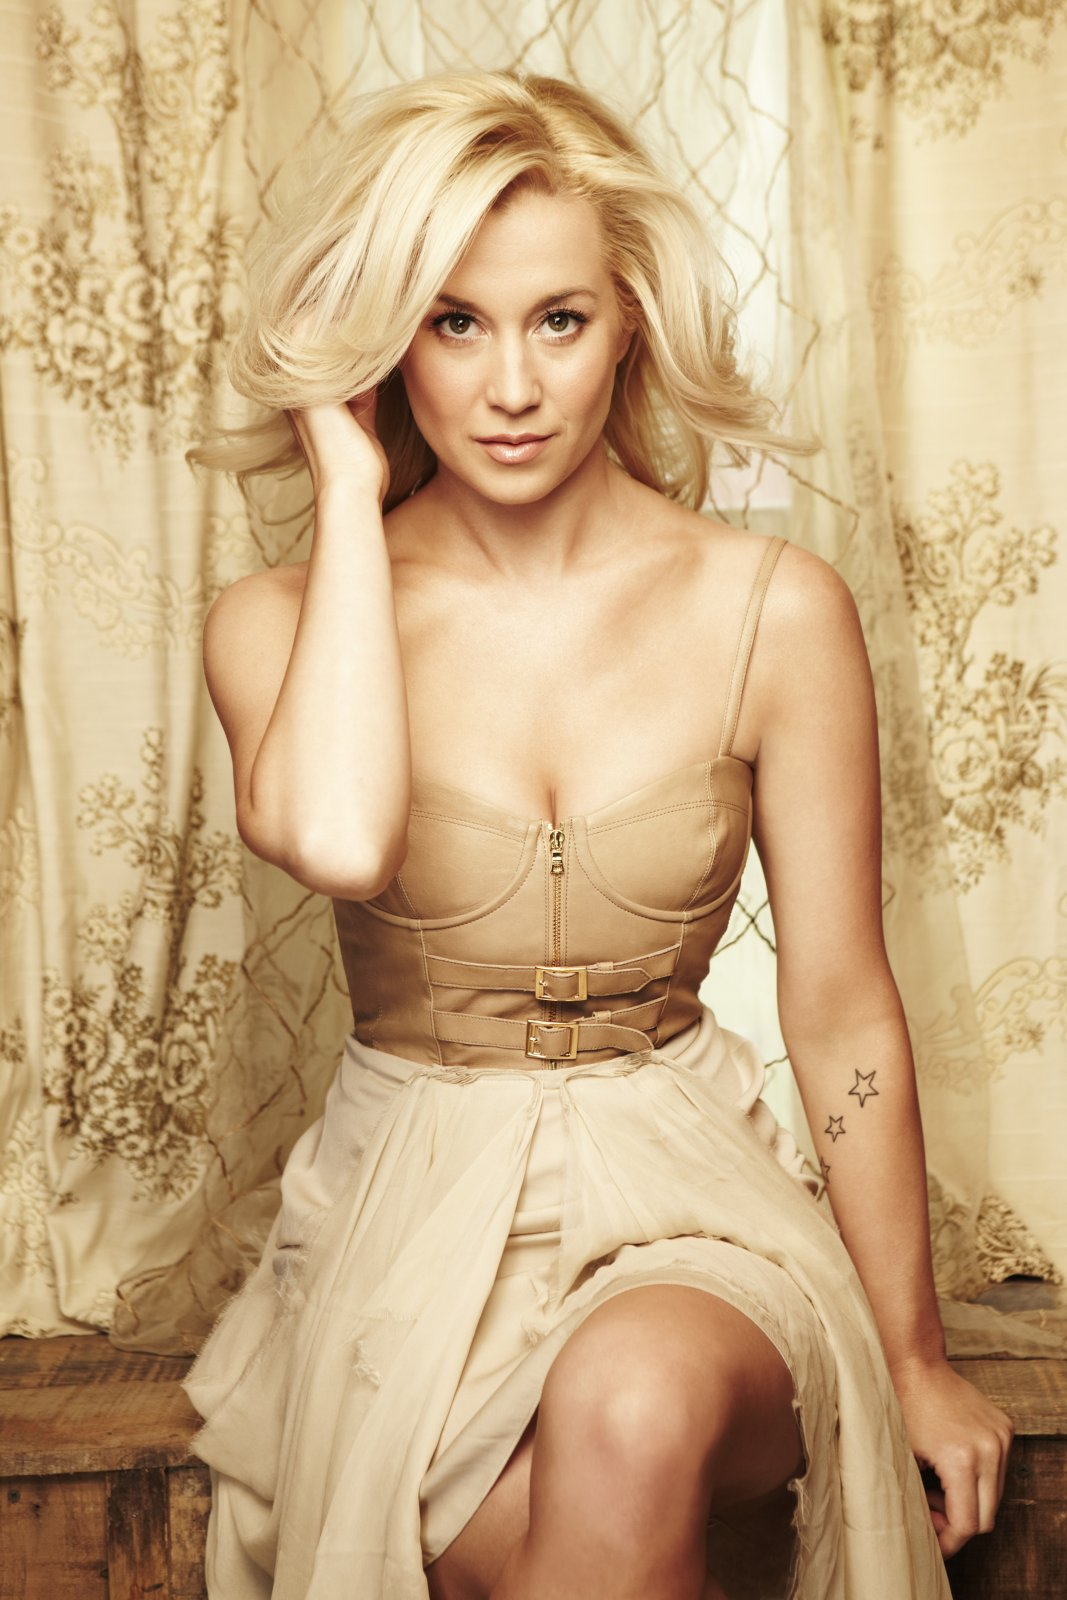 Kelly pickler nude pic something also